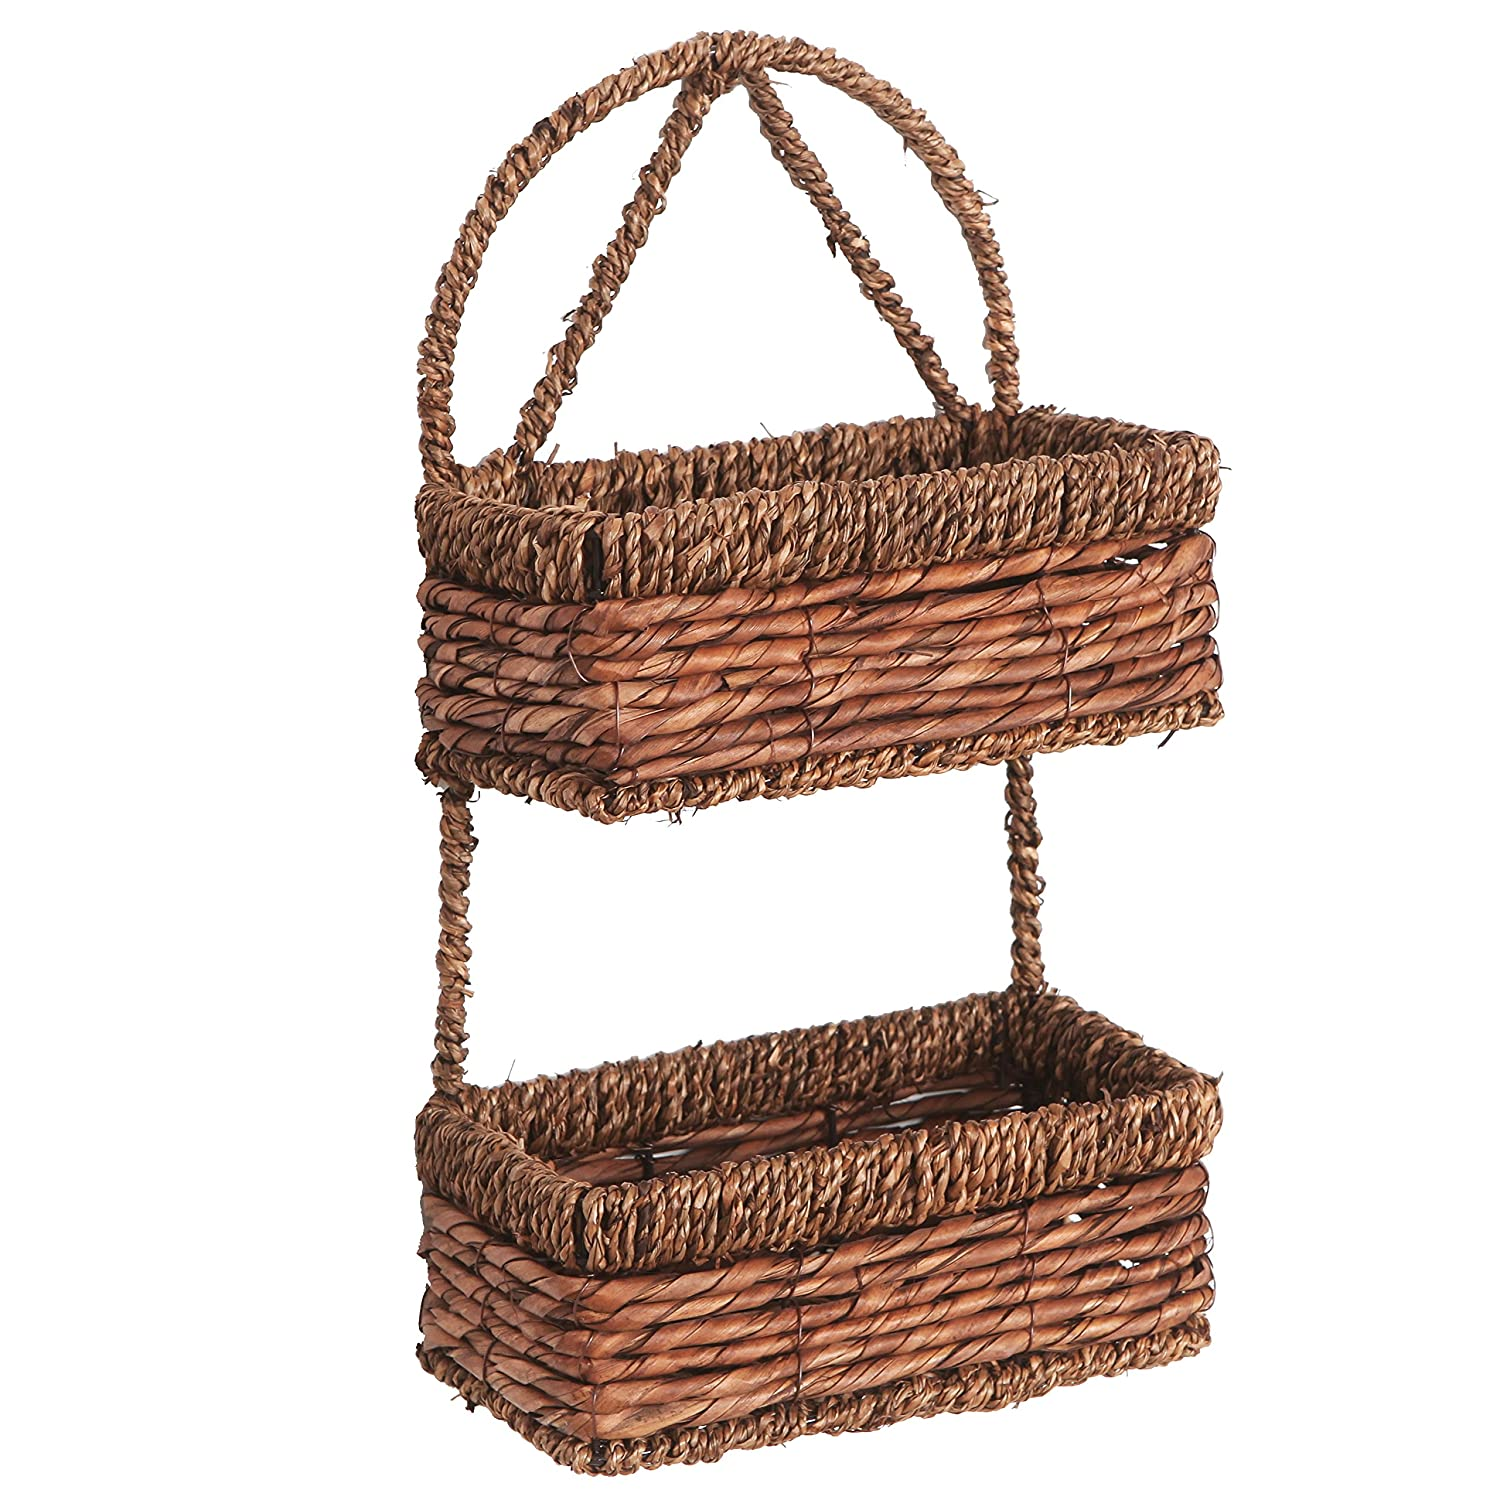 MyGift Hand-woven Seagrass 14-Inch Wall Hanging 2-Tier Storage Basket, Brown